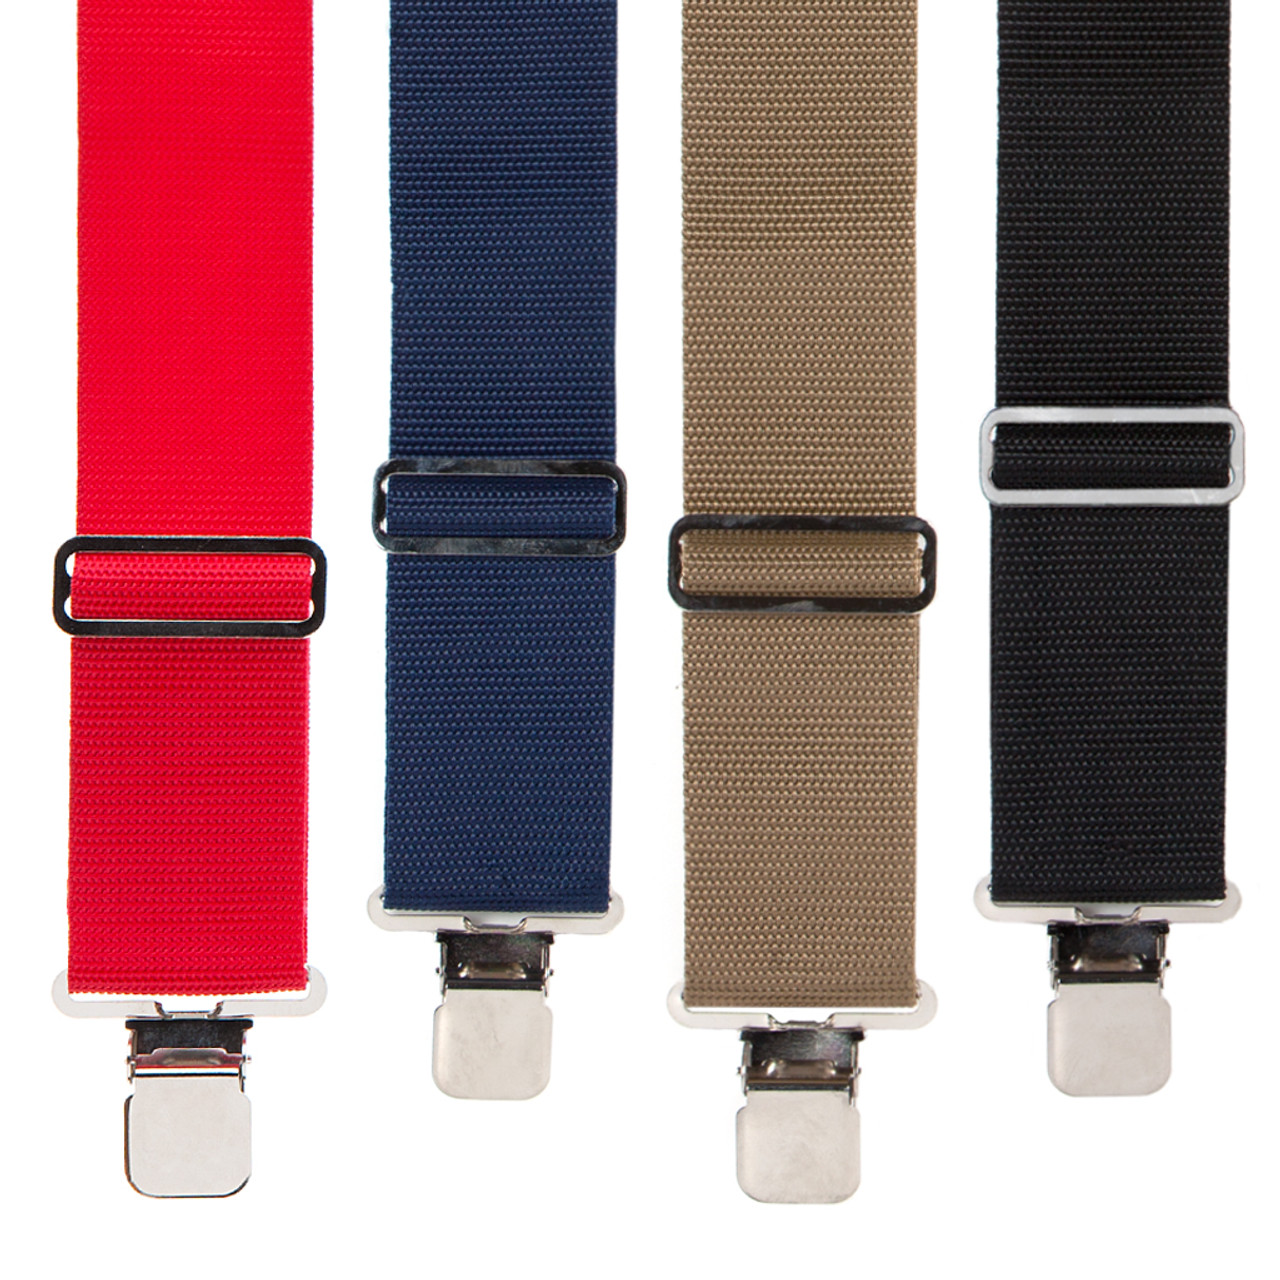 SuspenderStore Mens Logger Suspenders BUTTON 4 sizes, 5 colors